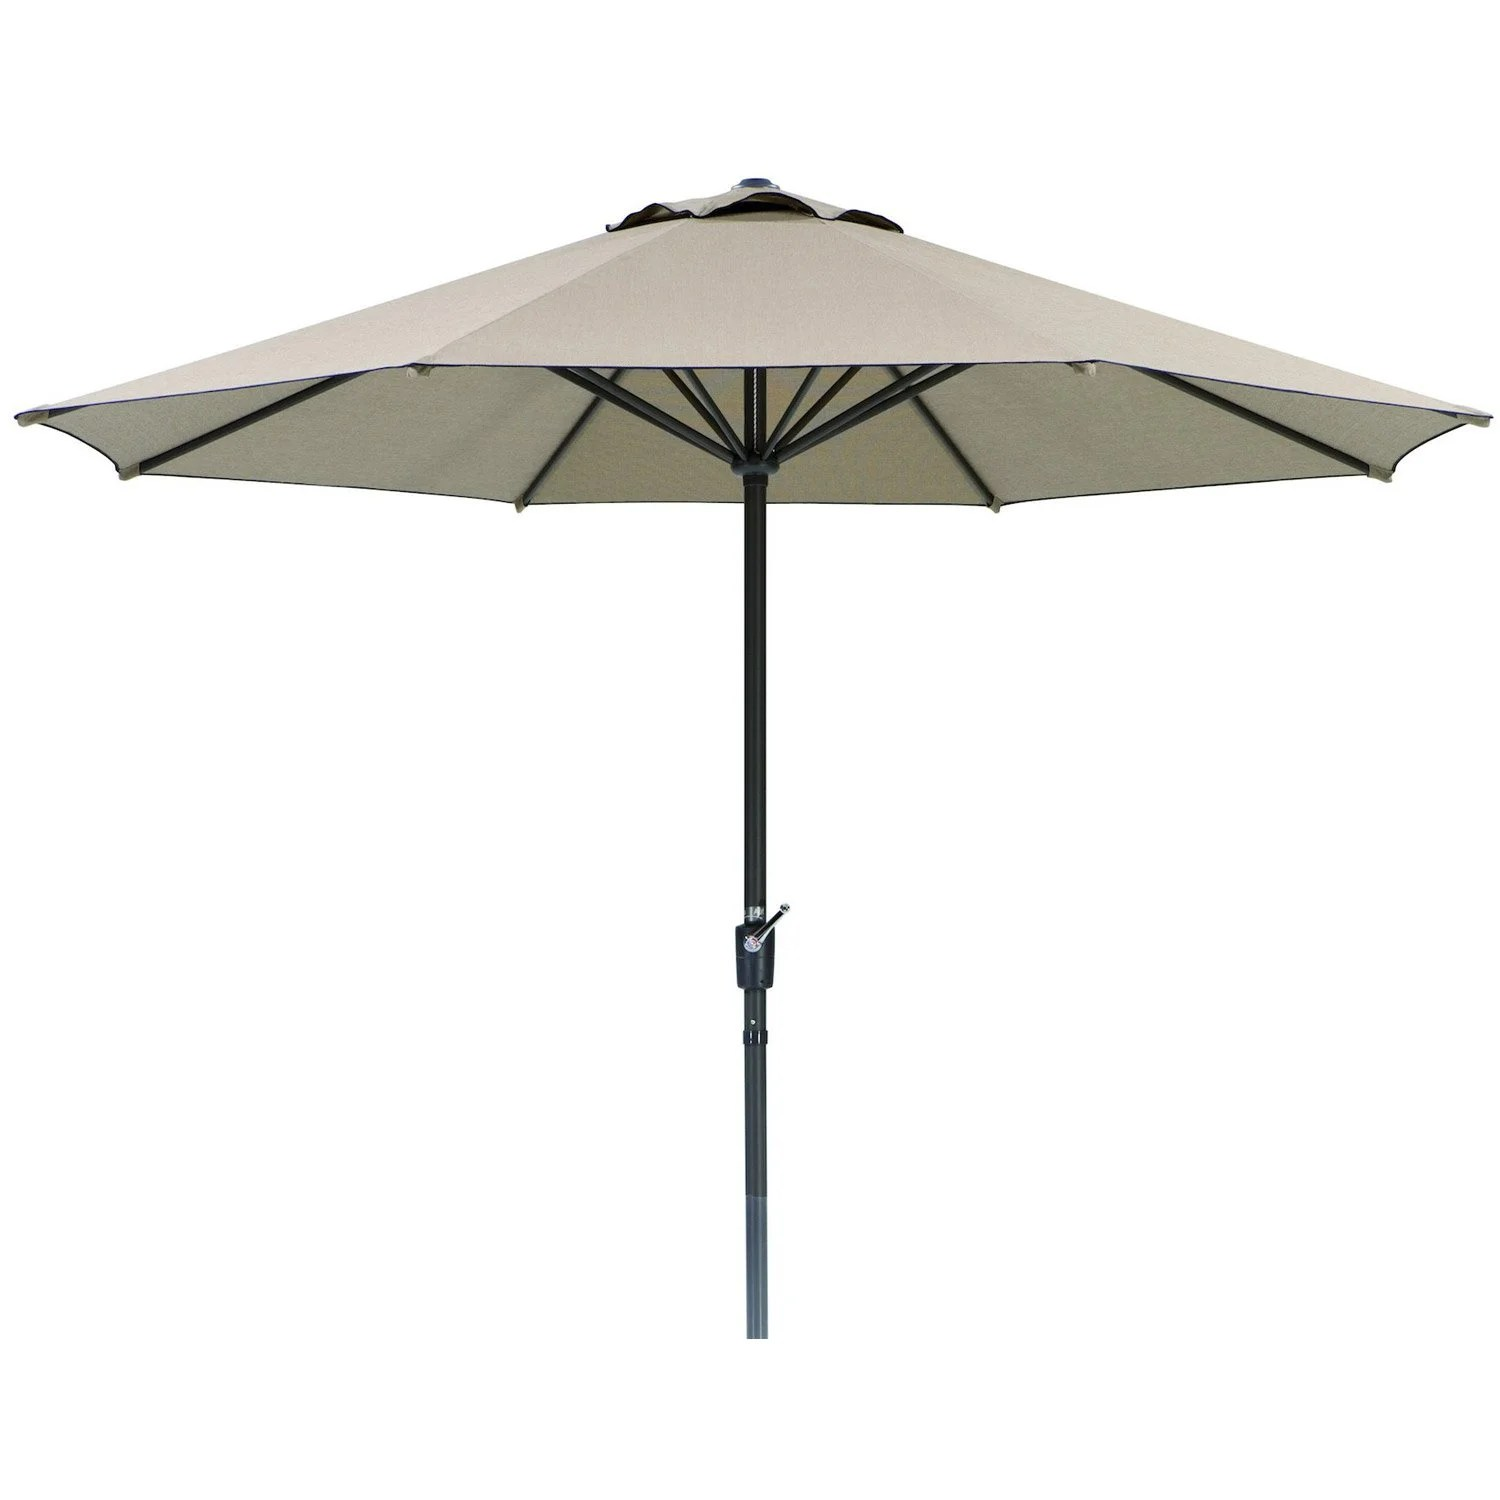 Parasol Soldes Leroy Merlin Awesome Ahurissant Parasol Deporte Inclinable Leroy Merlin